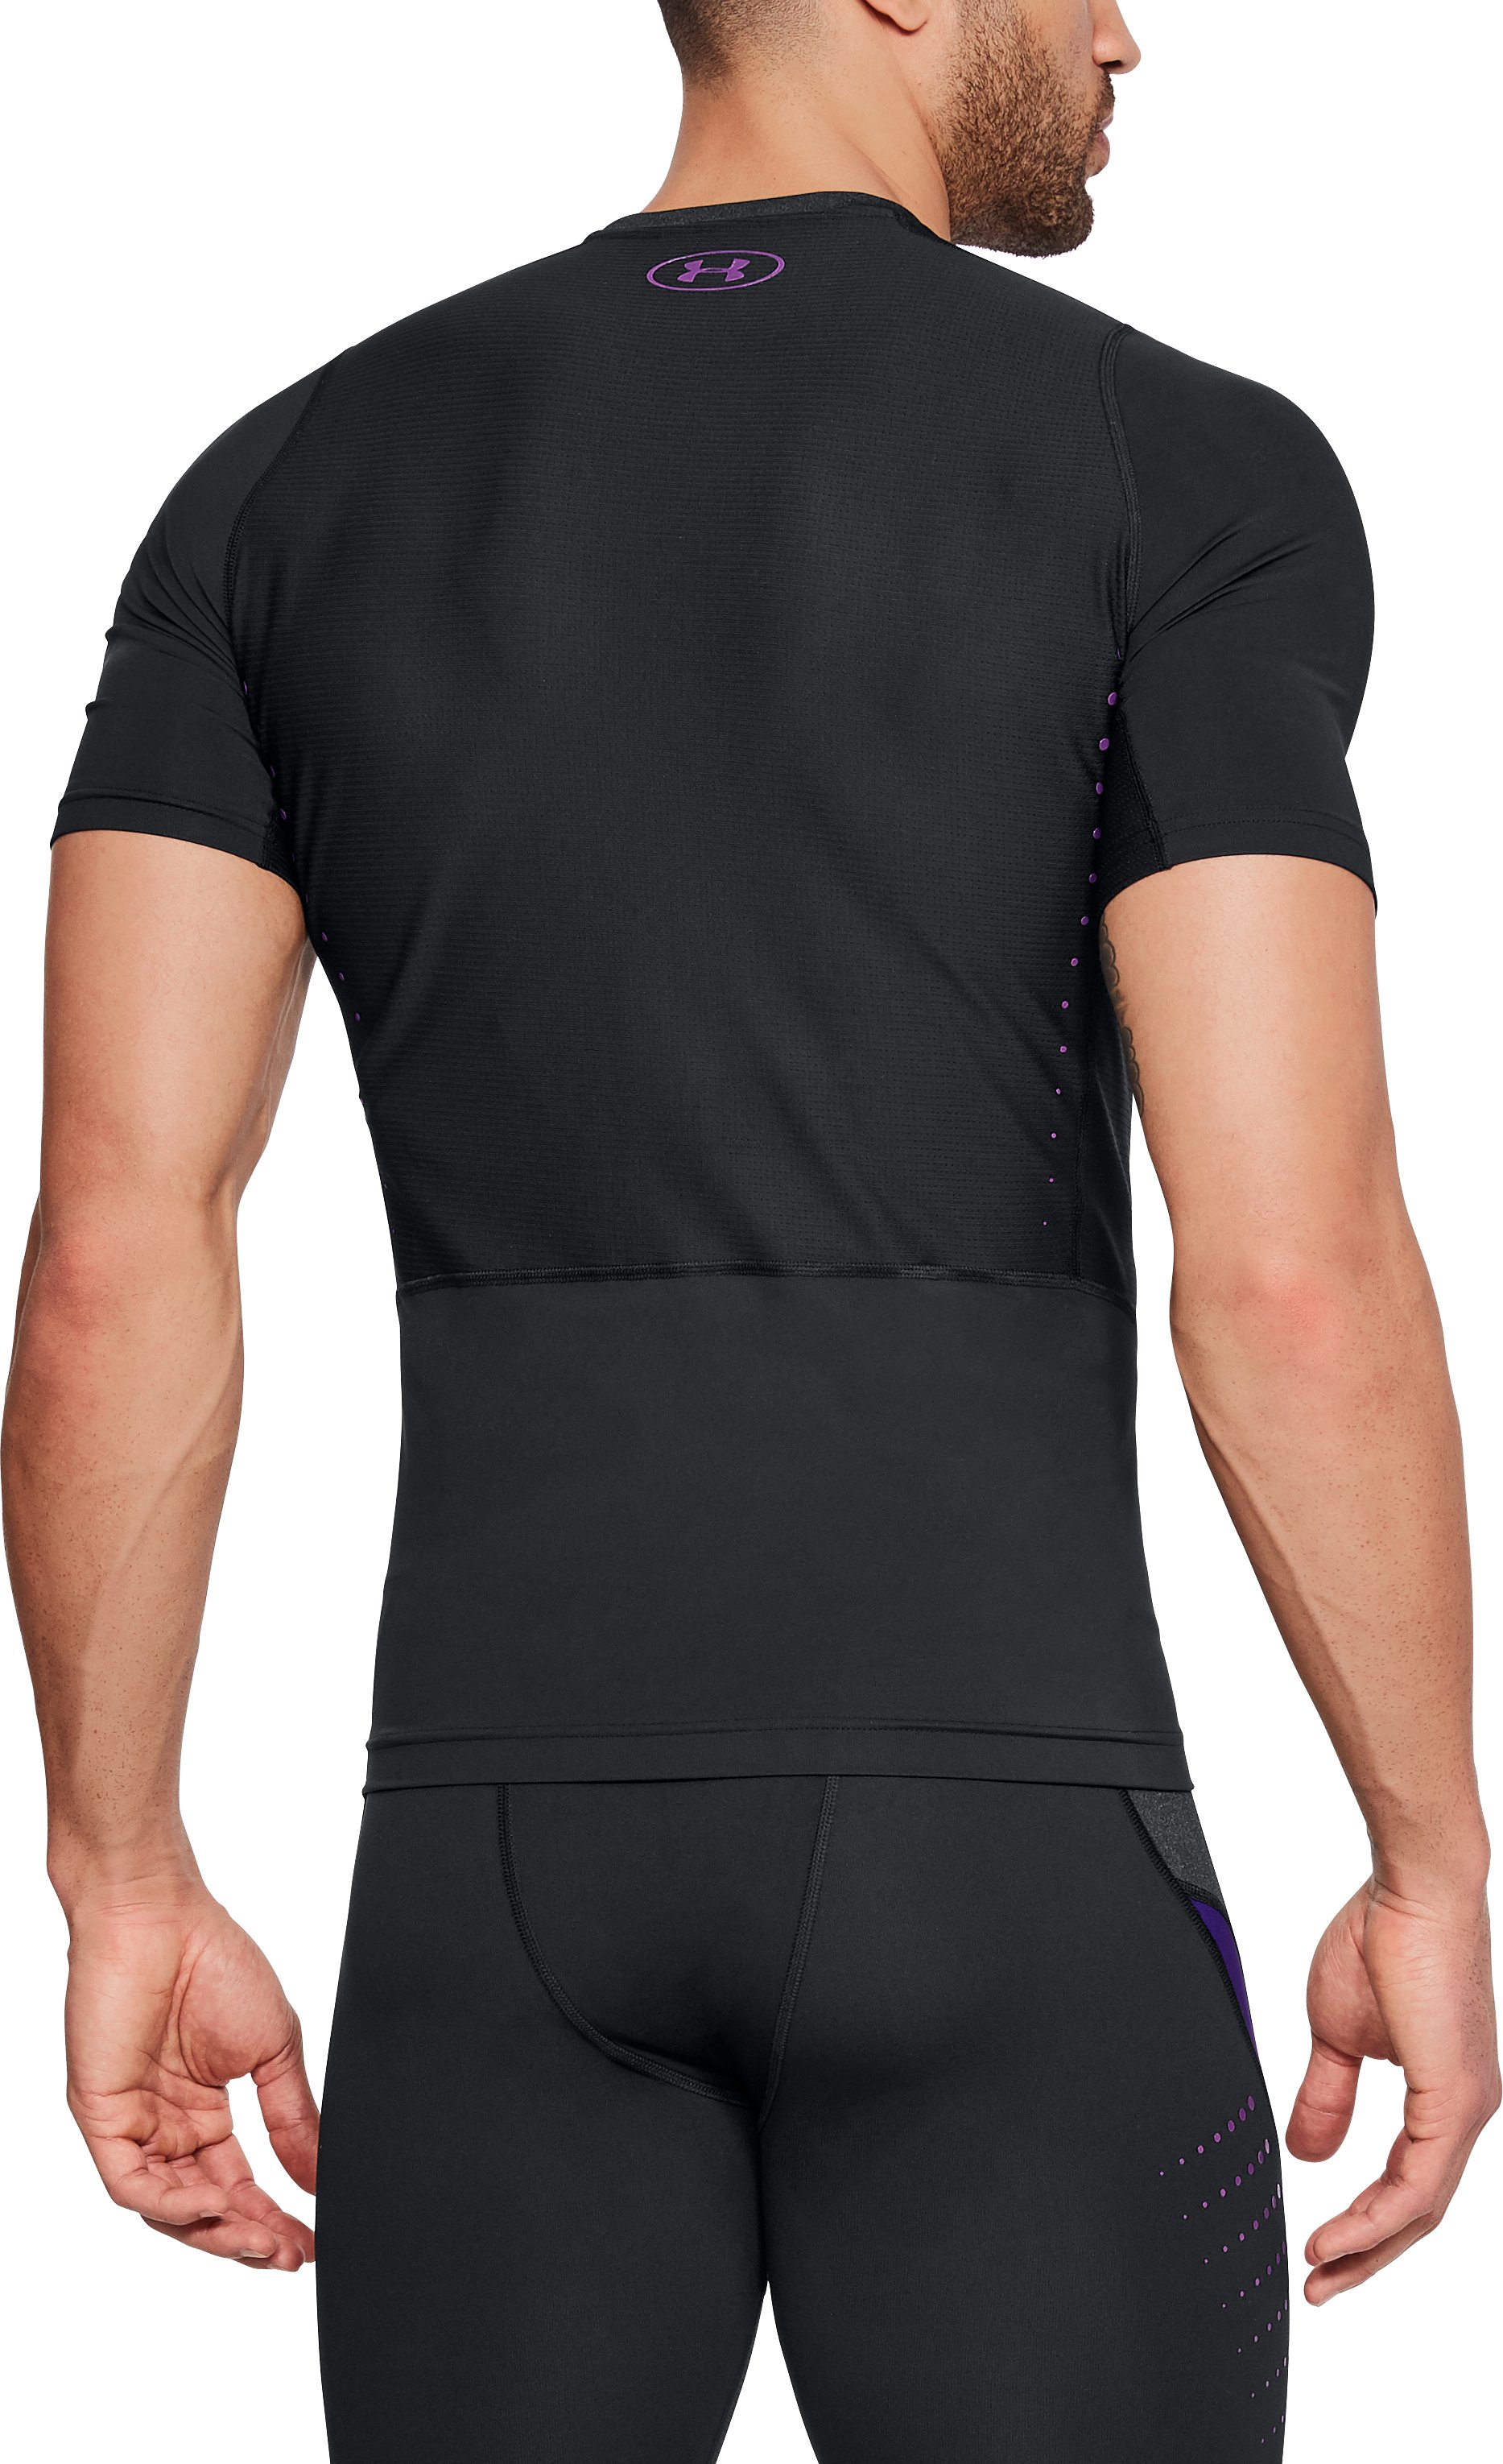 Men's NFL Combine Authentic Event Compression Short Sleeve, Black ,